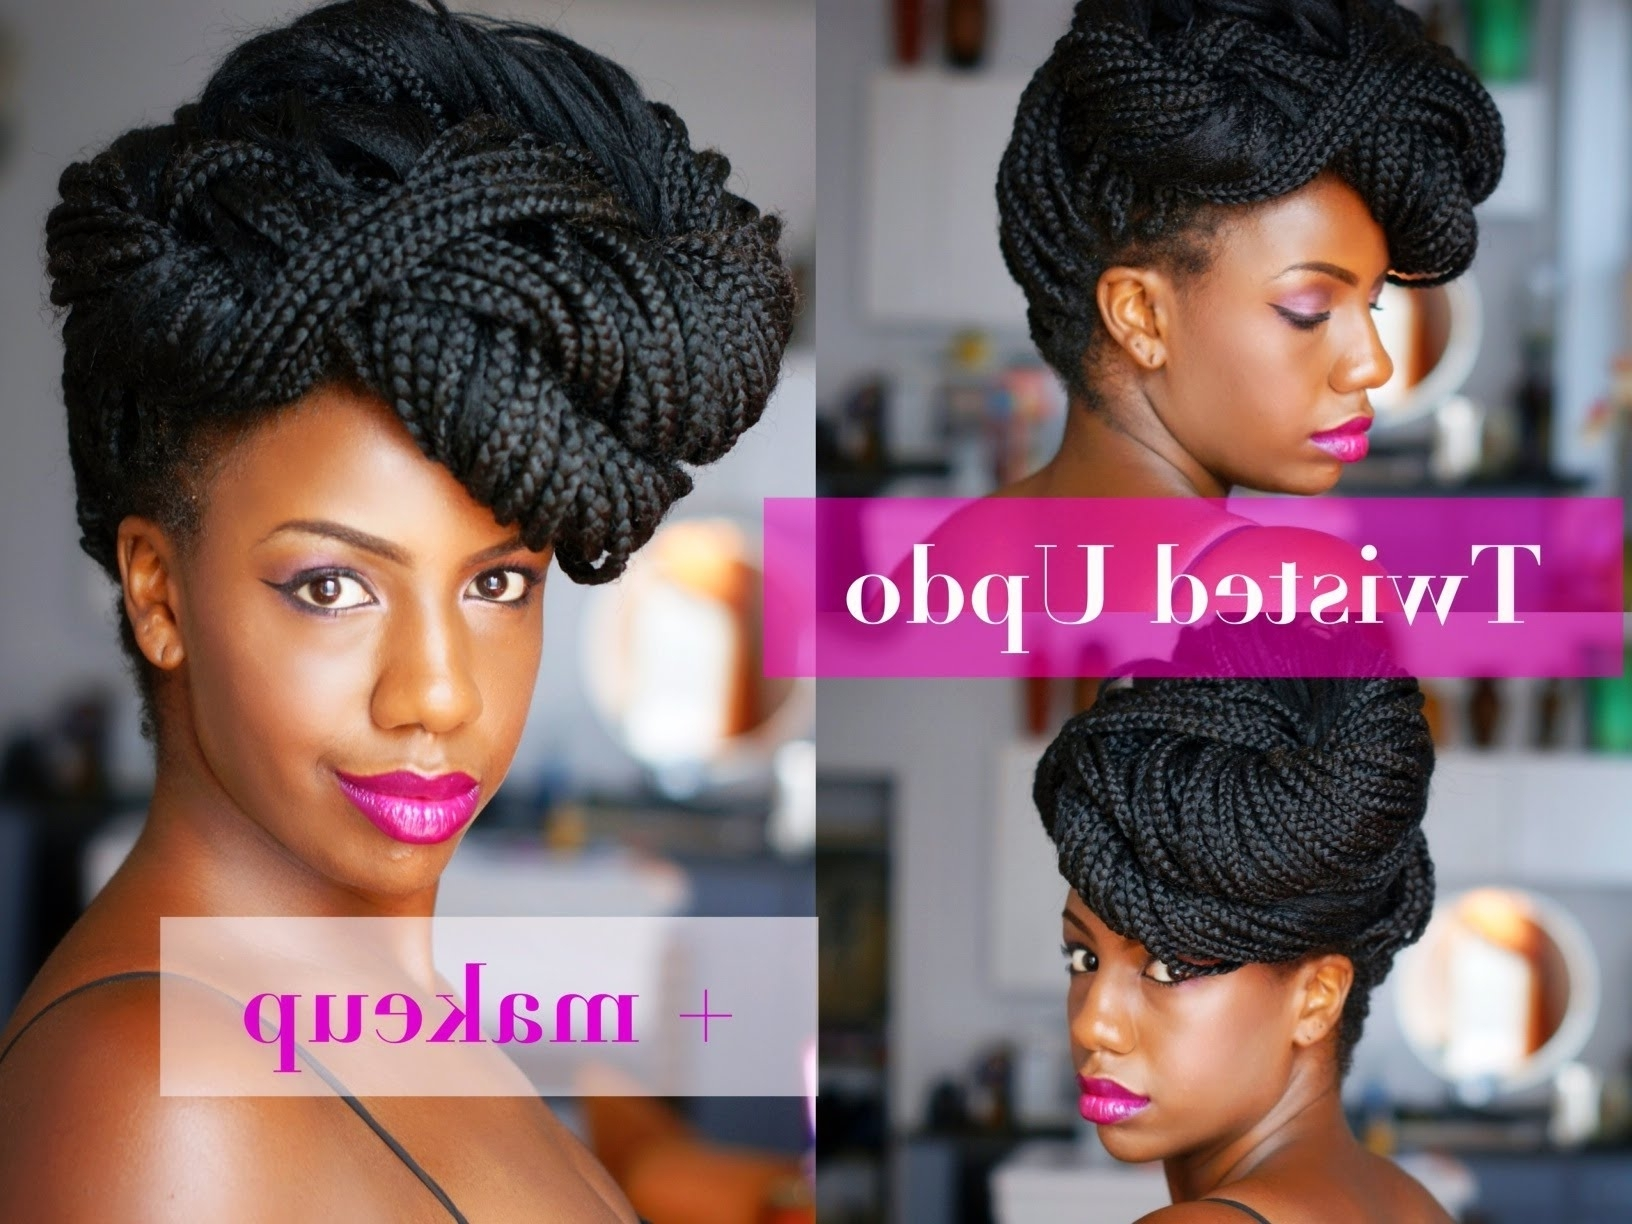 Twisted Updo For Havana Twists, Marley Twists, Senegalese Twists Intended For Senegalese Twist Styles Updo Hairstyles (View 3 of 15)